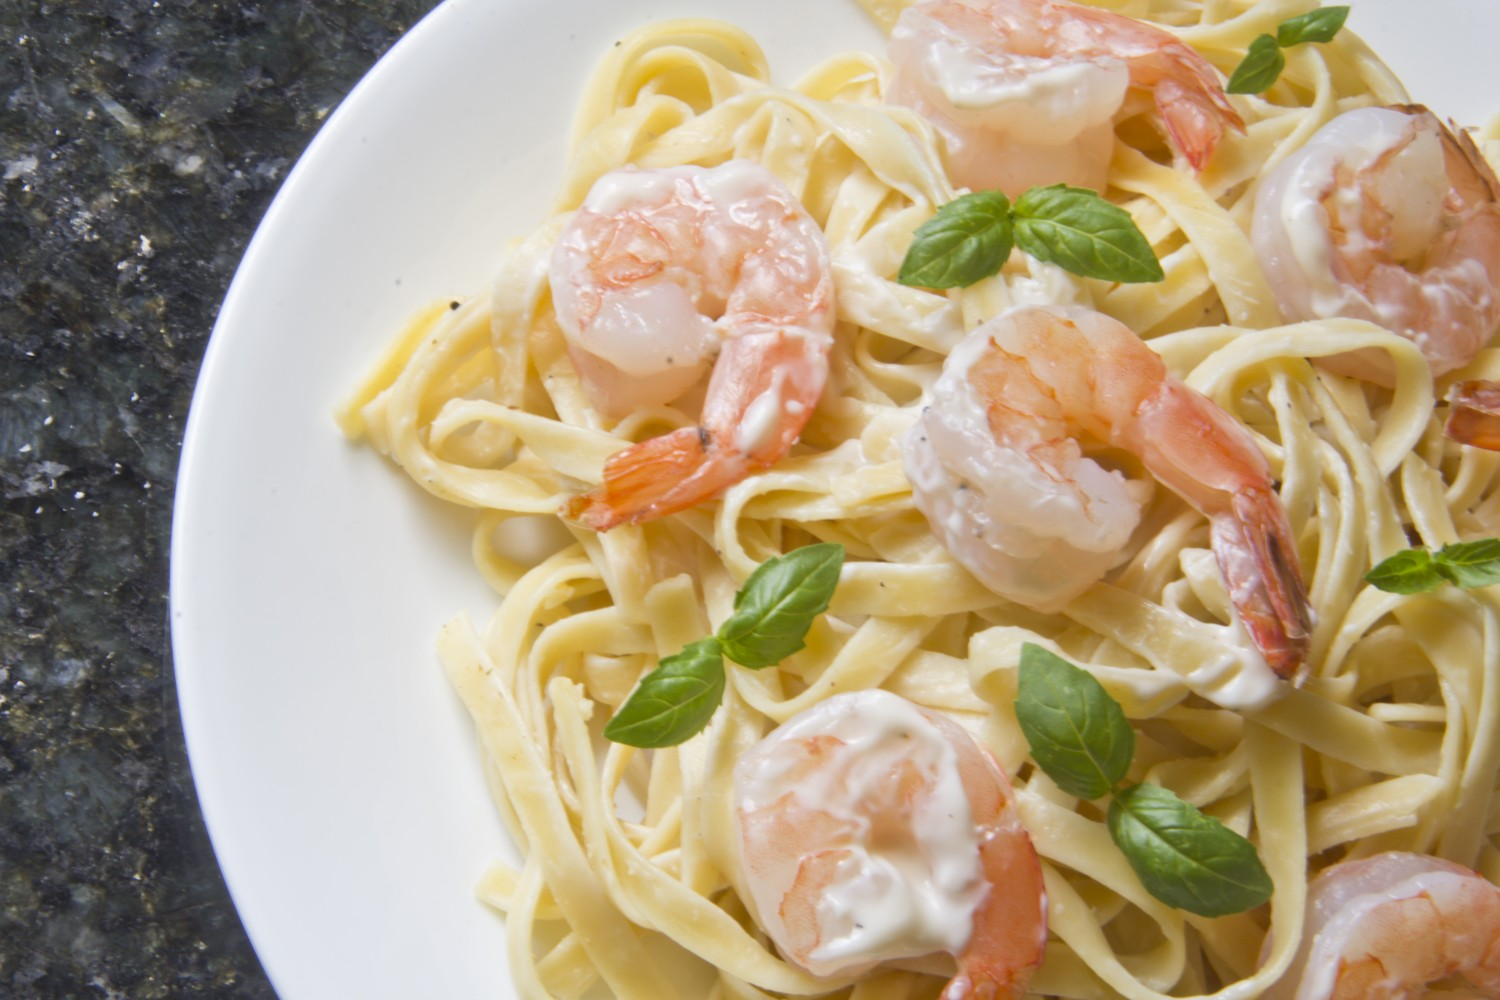 Image for Creamy Fettuccine with Shrimp